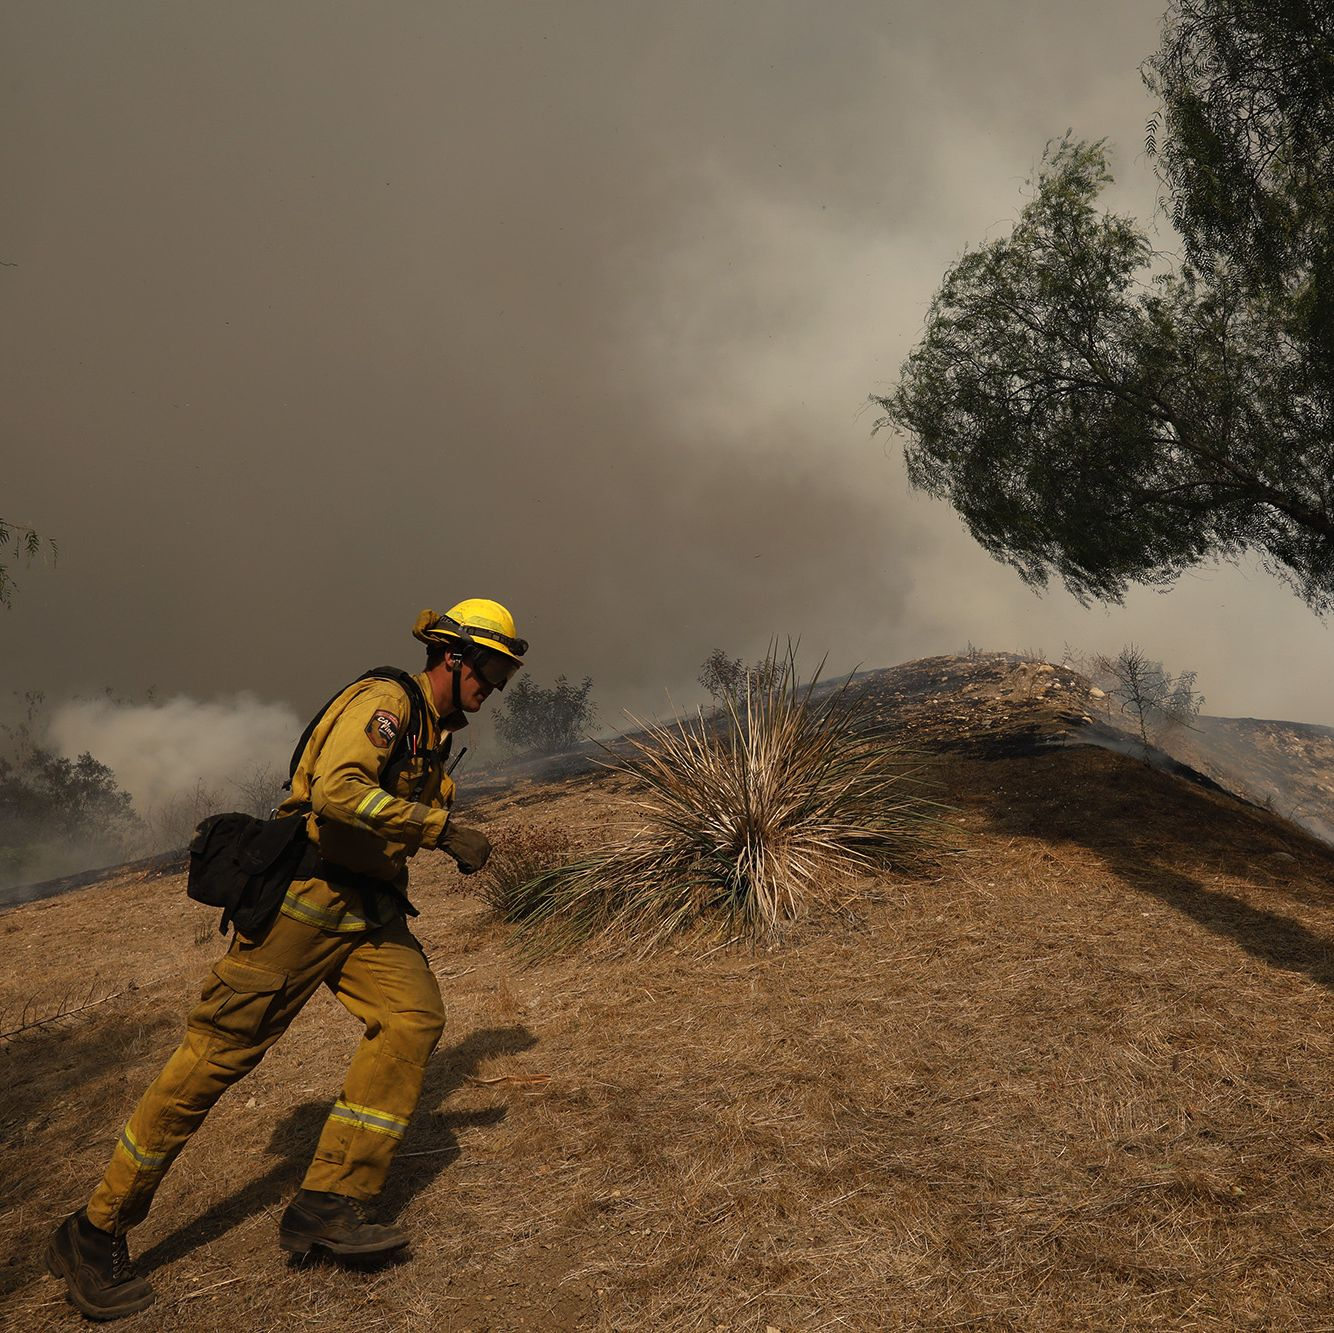 How Your Strava-Recorded Hill Climbs Can Help Firefighters Battle Wildfires